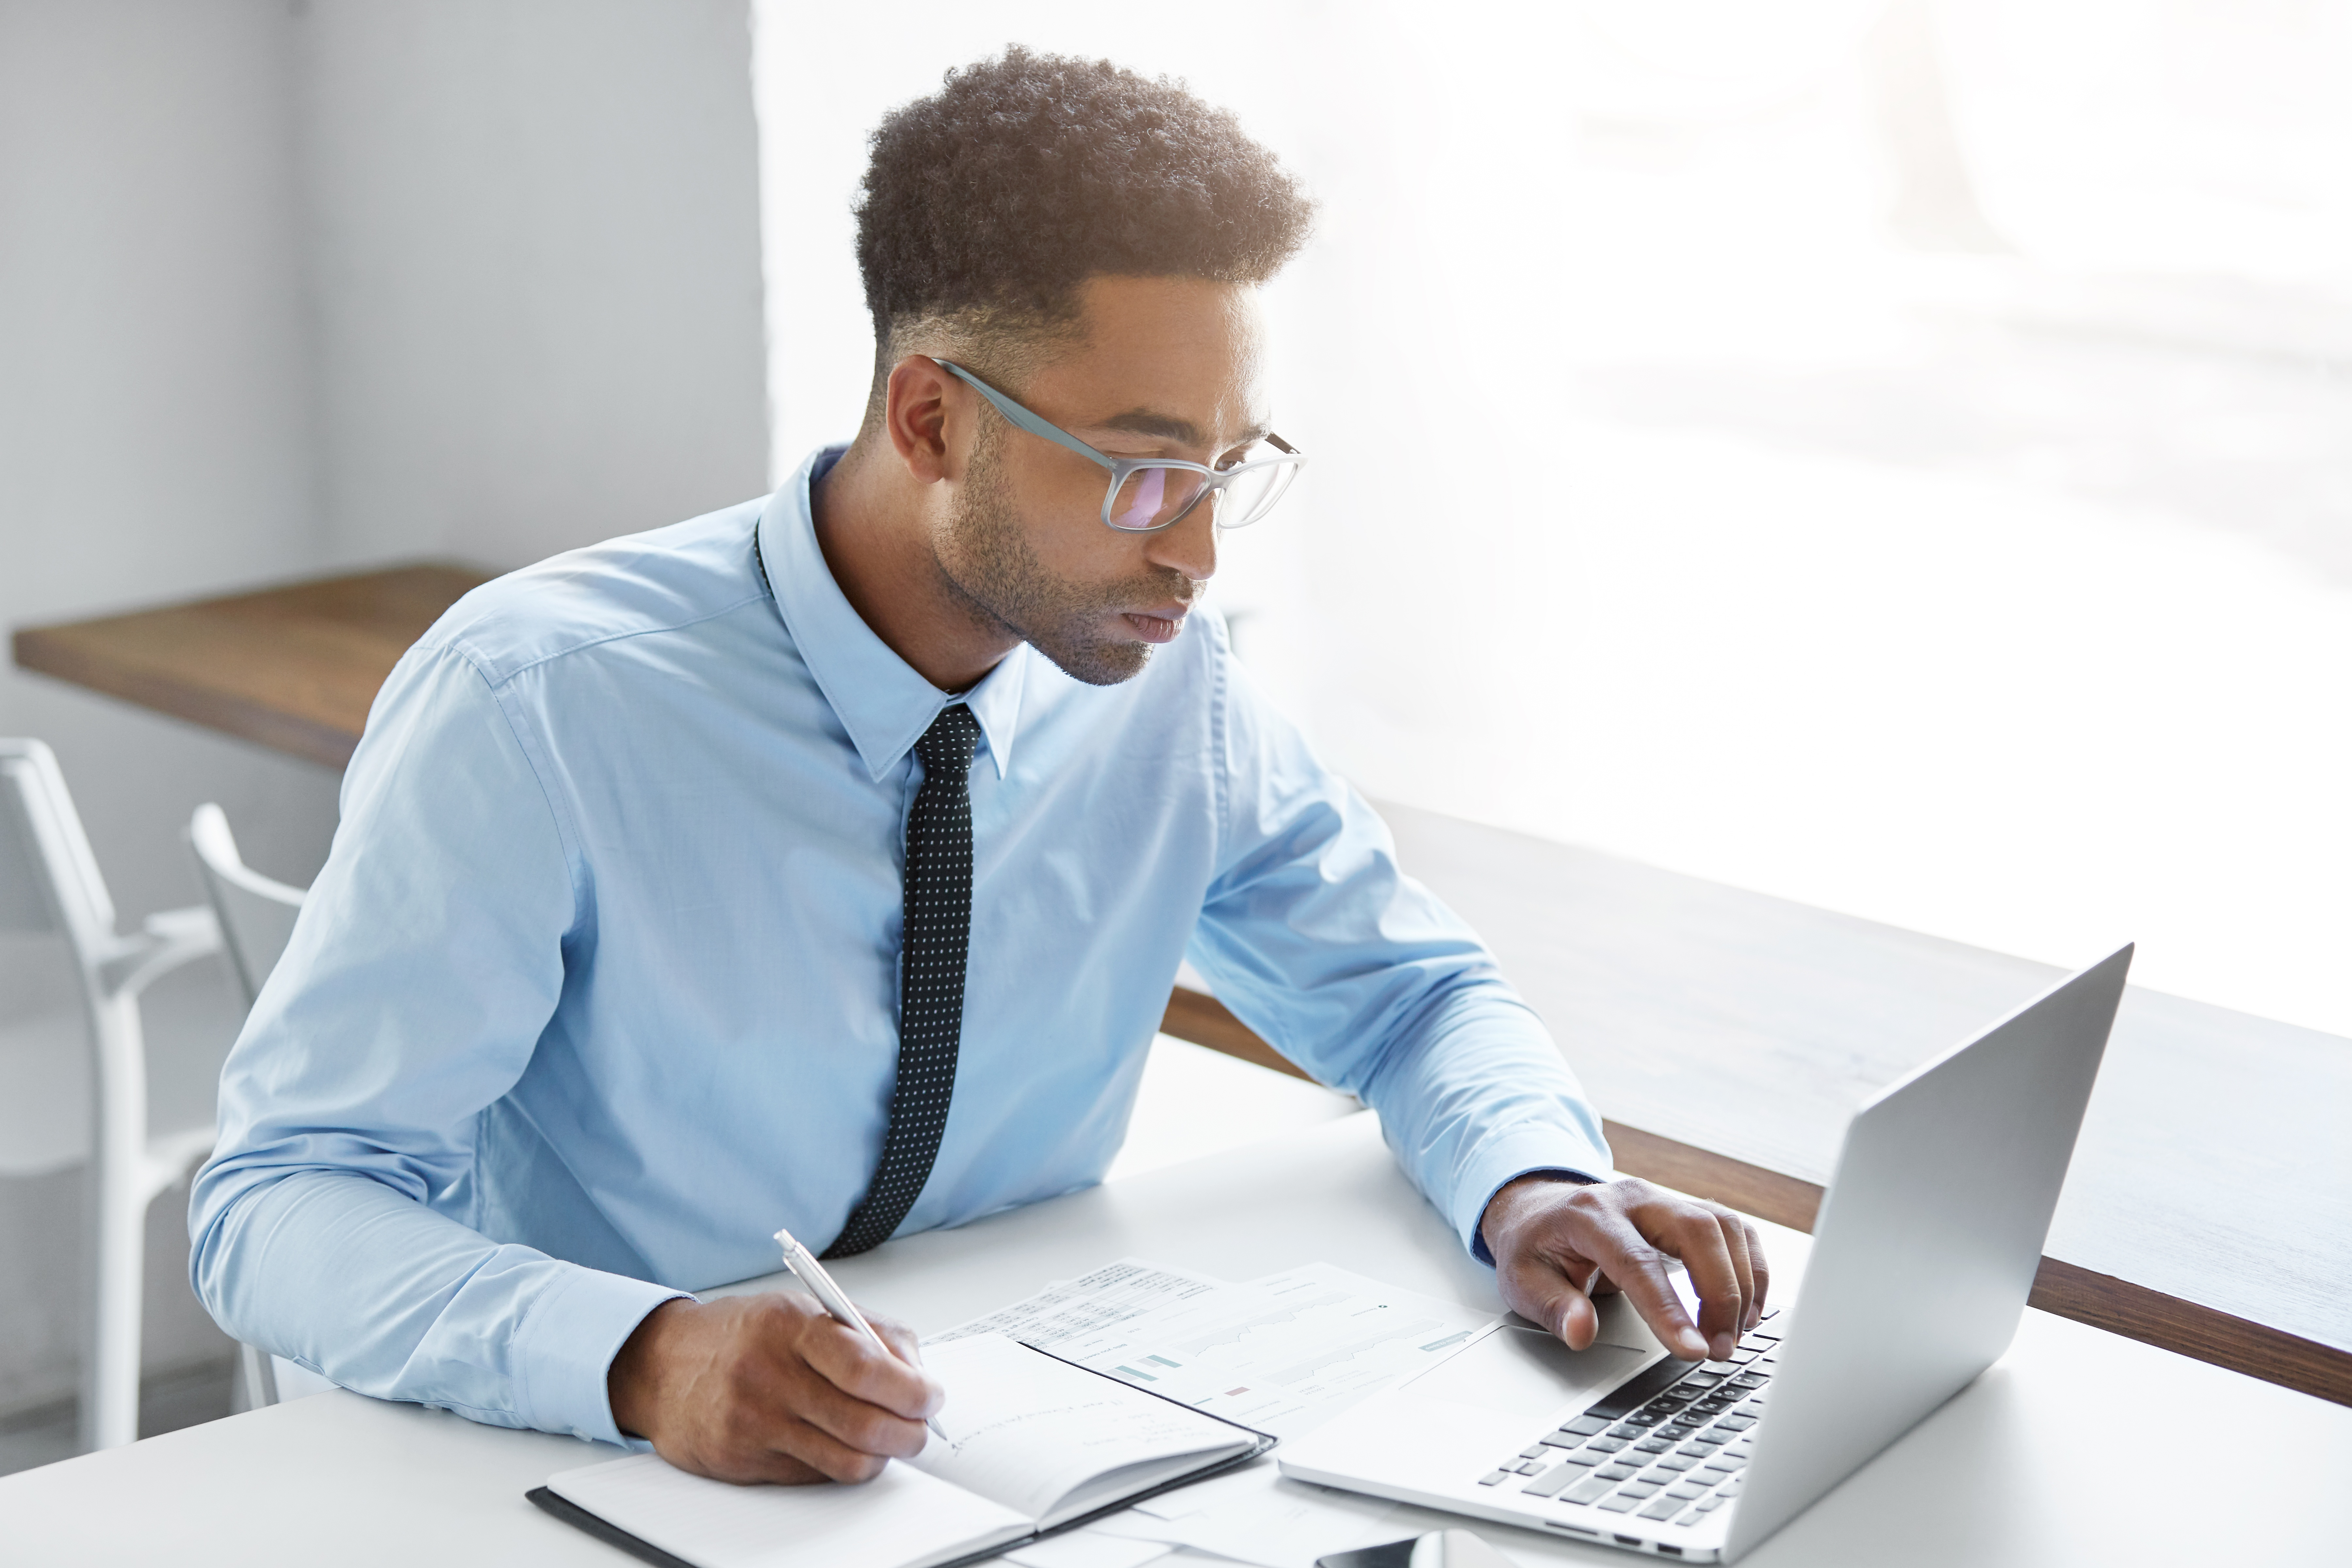 Male worker site in C-style blue shirt at office desk